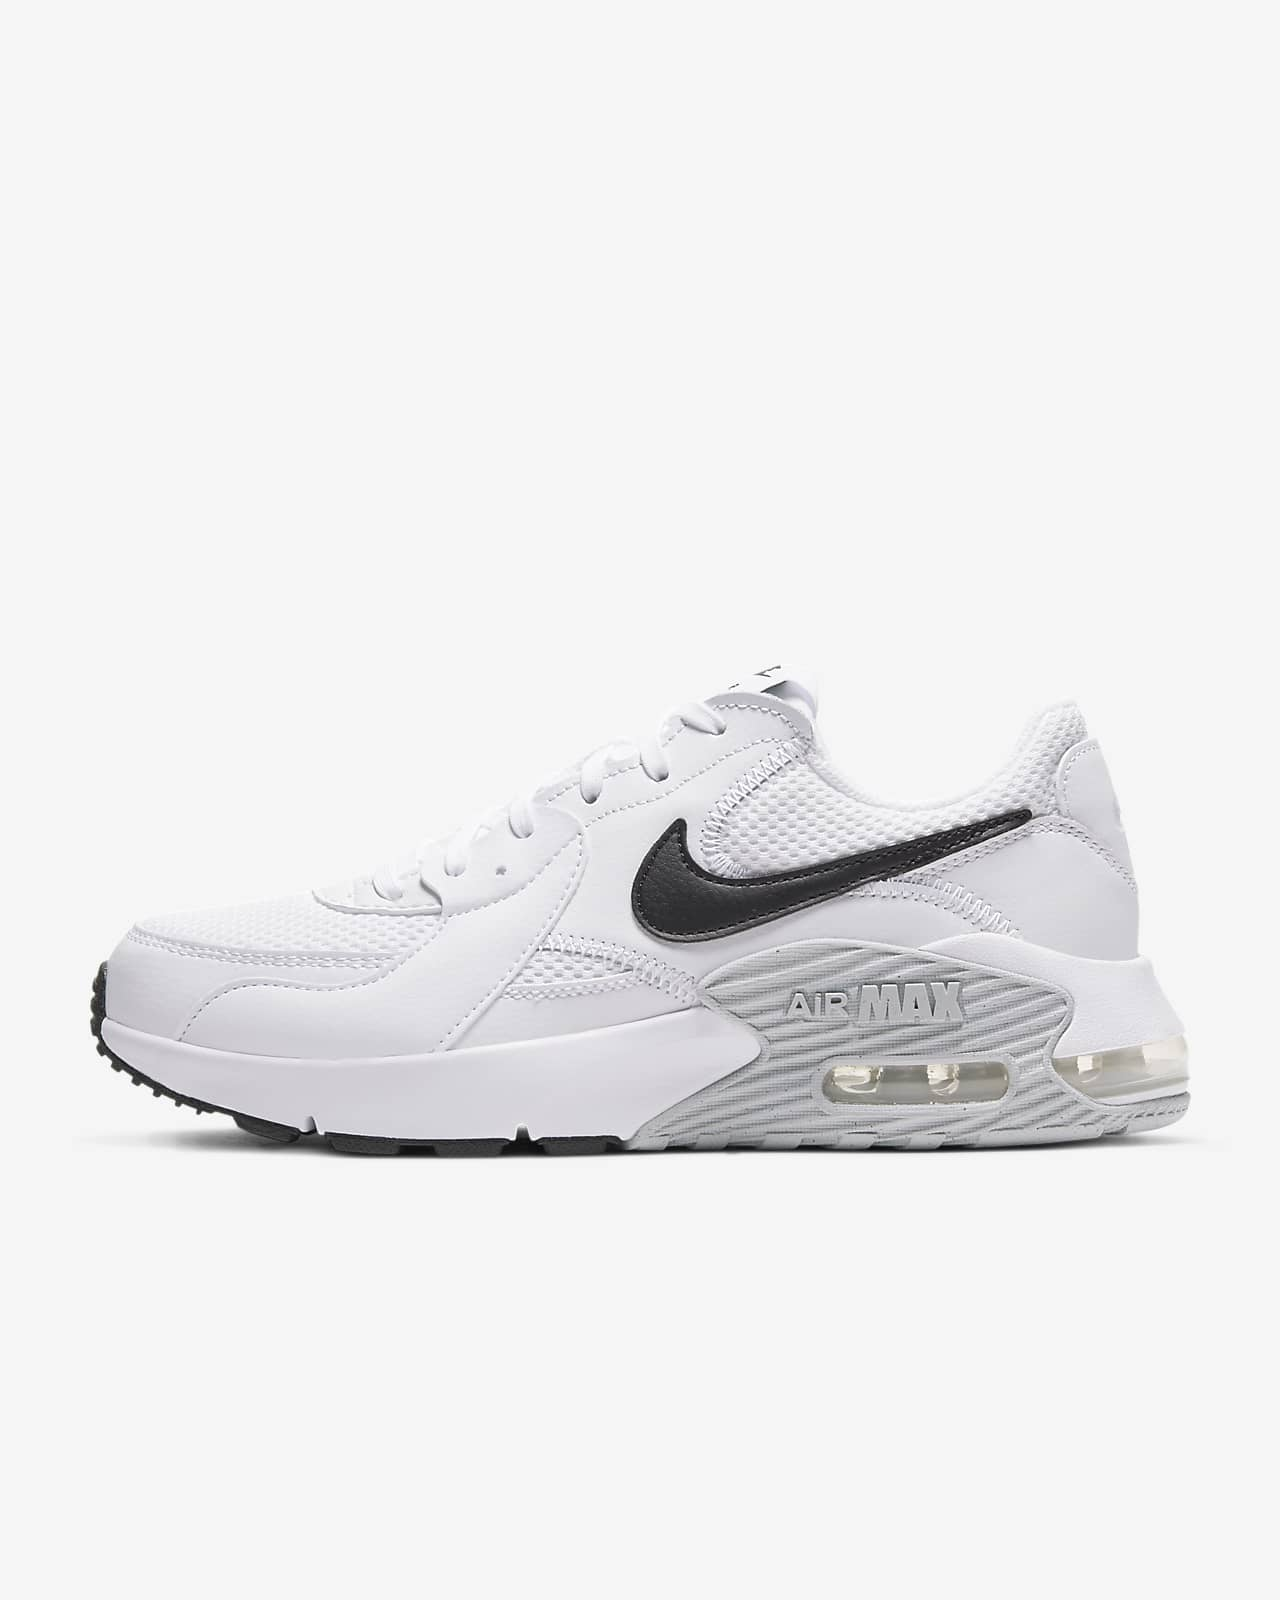 Chaussure Nike Air Max Excee pour Femme